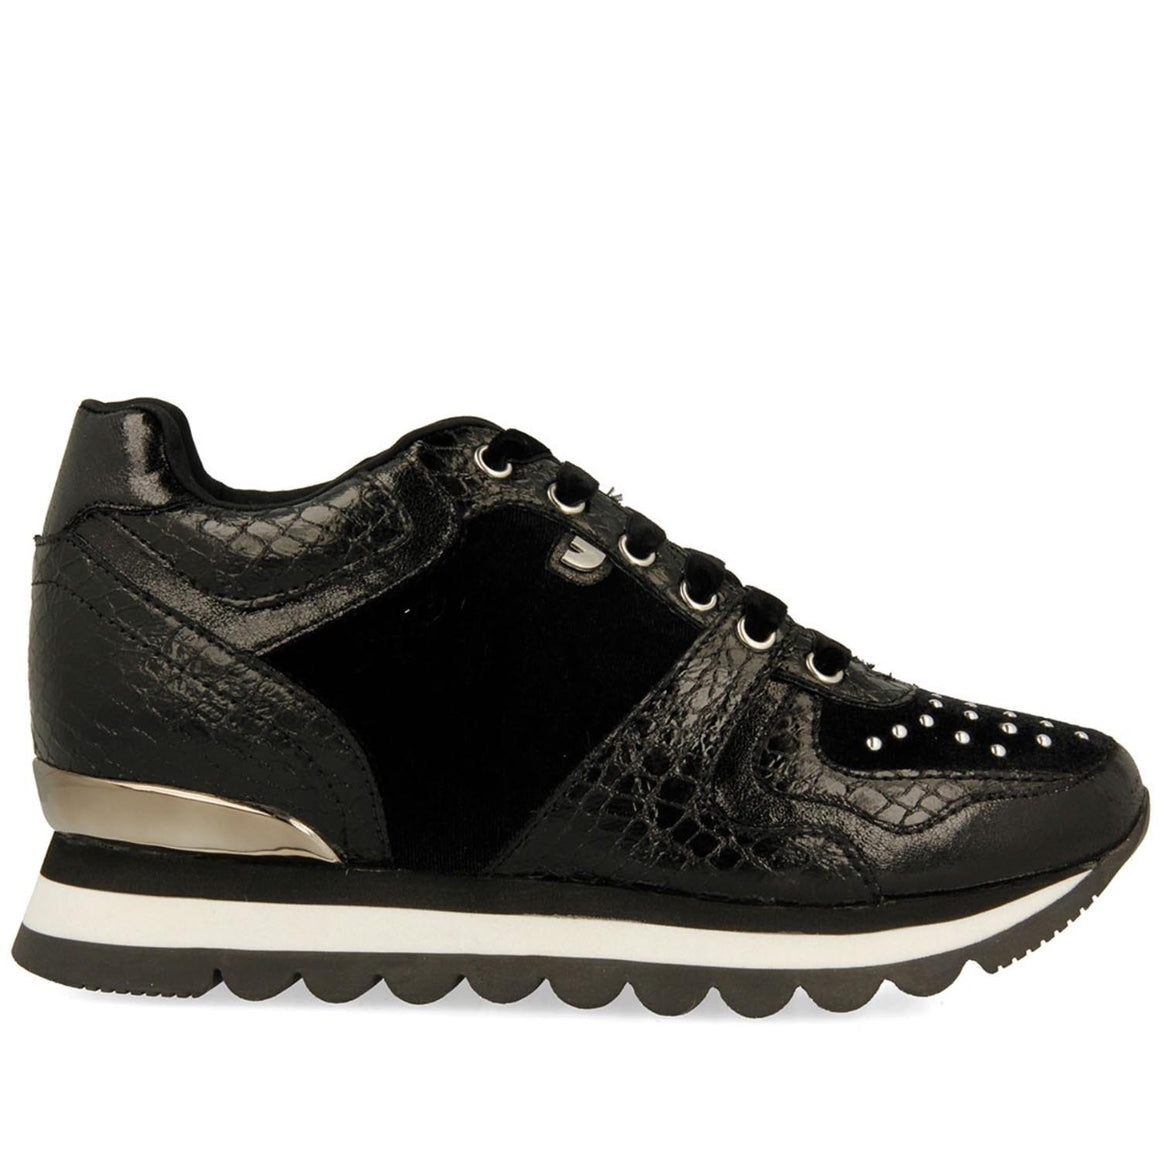 GIOSEPPO BLACK WEDGE SNEAKERS